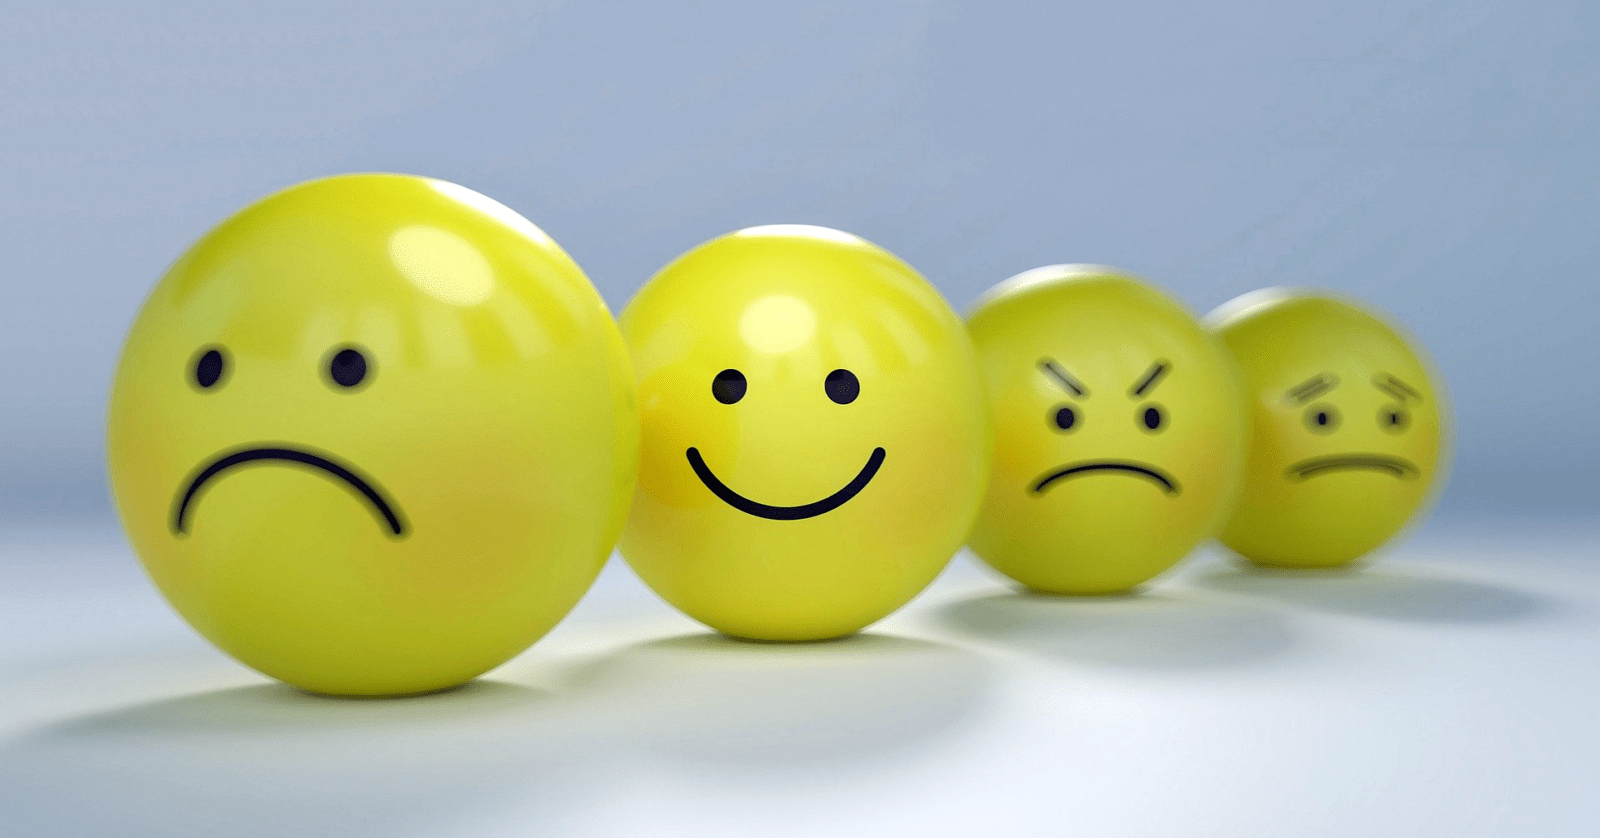 Four smileys - just one happily